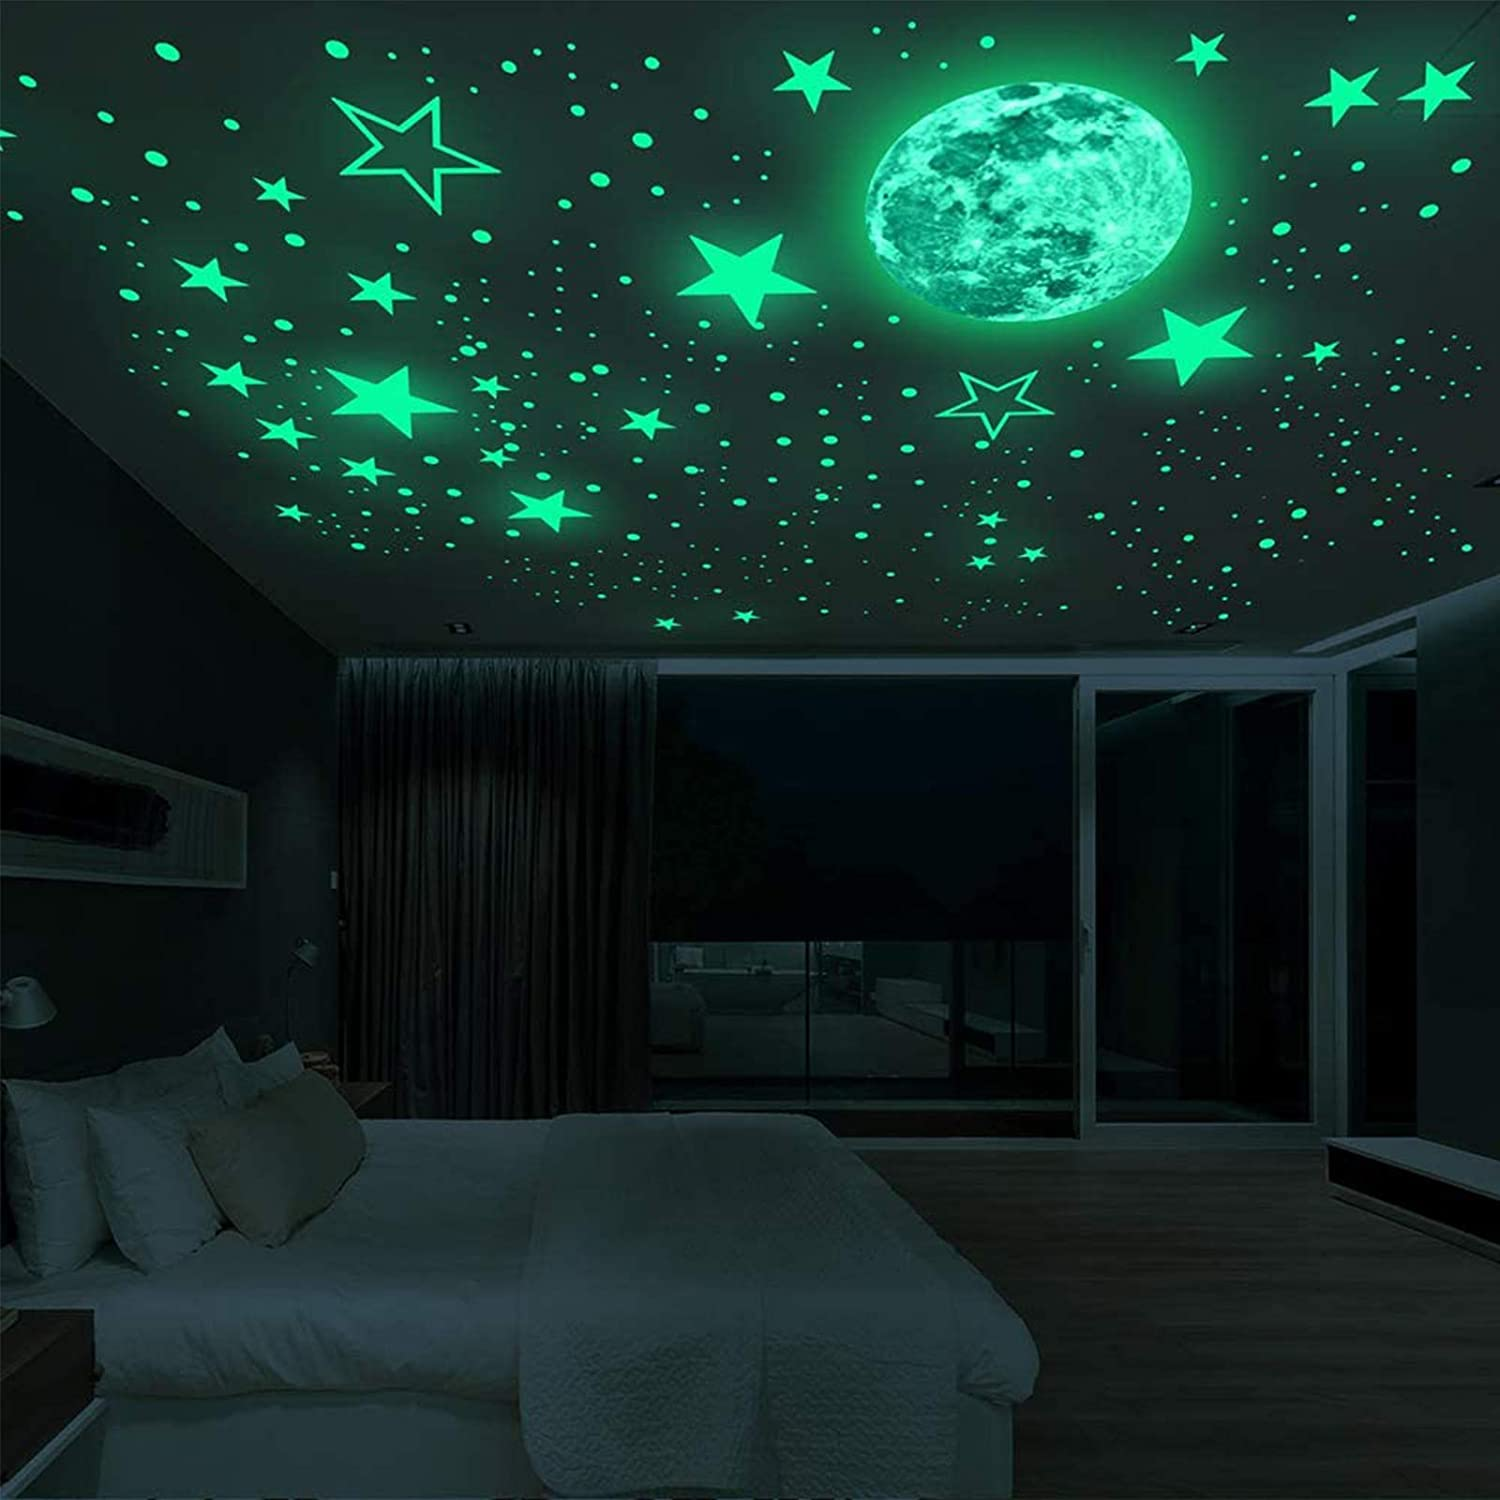 435PCS Glow in The Dark Stars Wall Stickers Moon &Planets Glowing Stars for Ceiling Kids Room Wall Decals Bedroom Decor